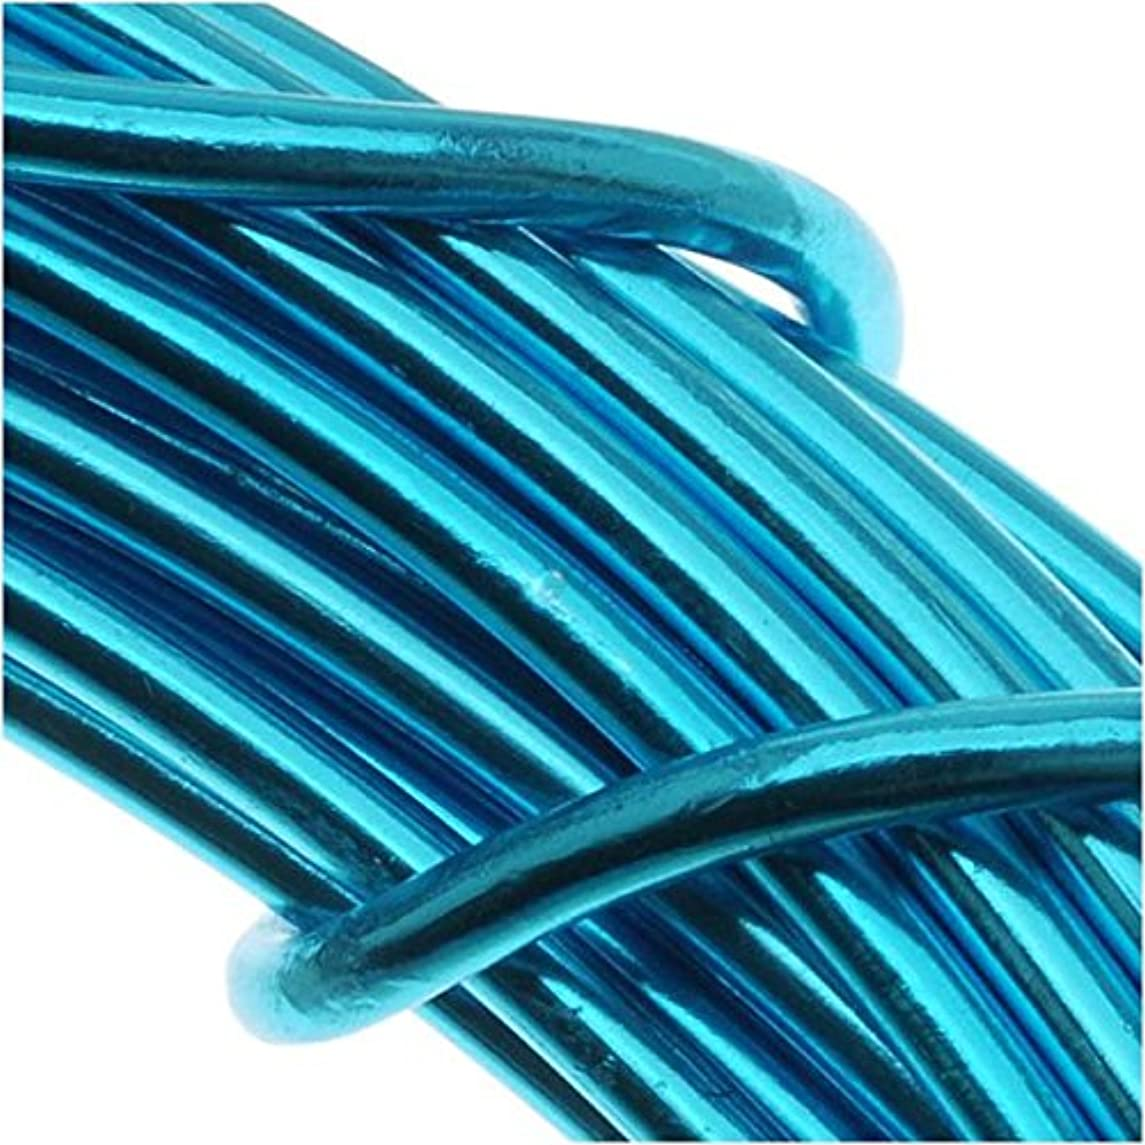 Beadsmith WCR-4117 11.8m 12 Gauge Aluminum Craft Wire, Turquoise, 39'